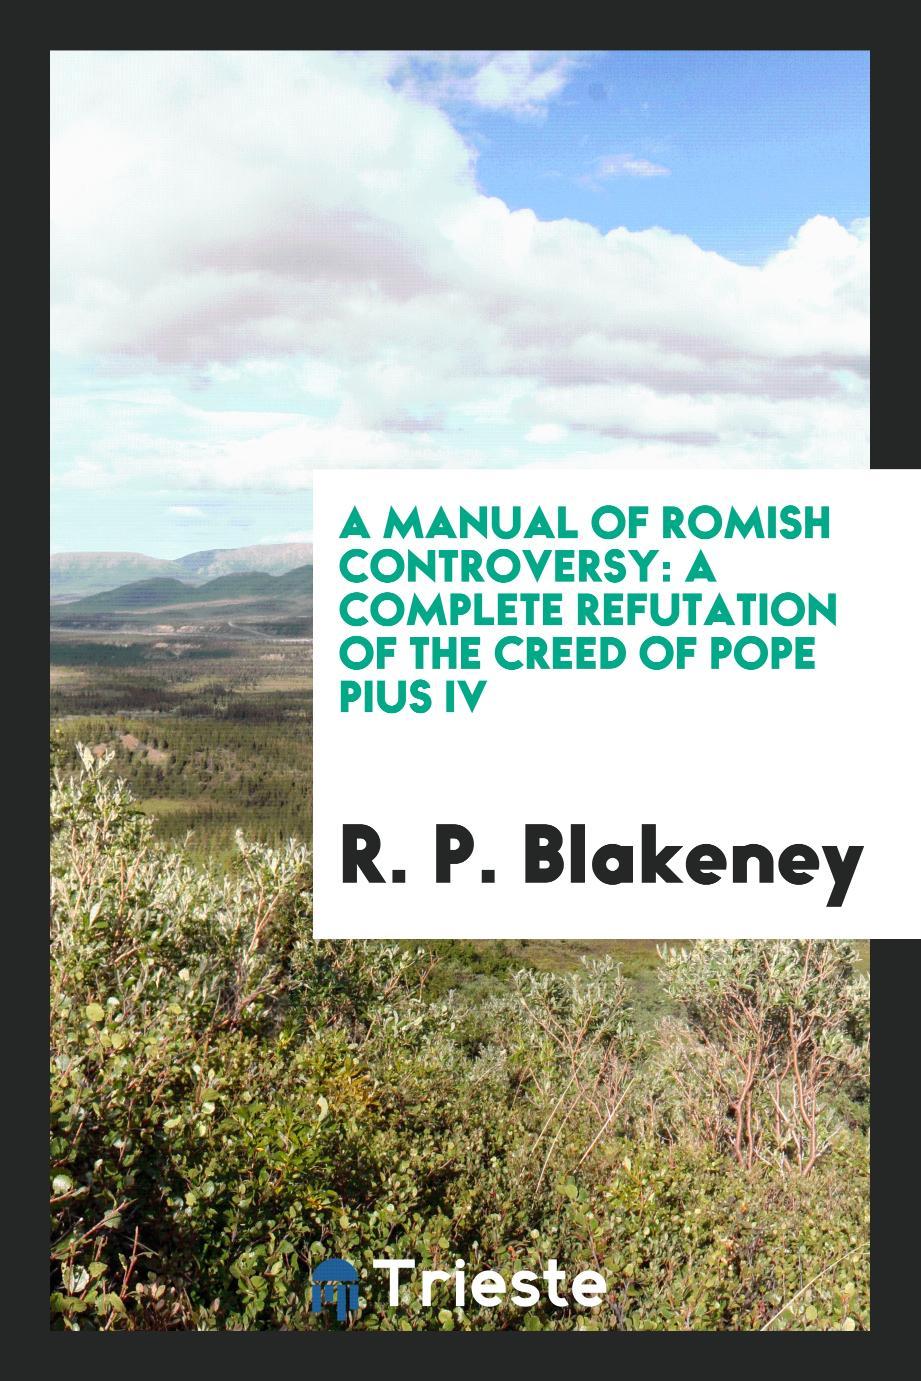 A Manual of Romish Controversy: A Complete Refutation of the Creed of Pope Pius IV